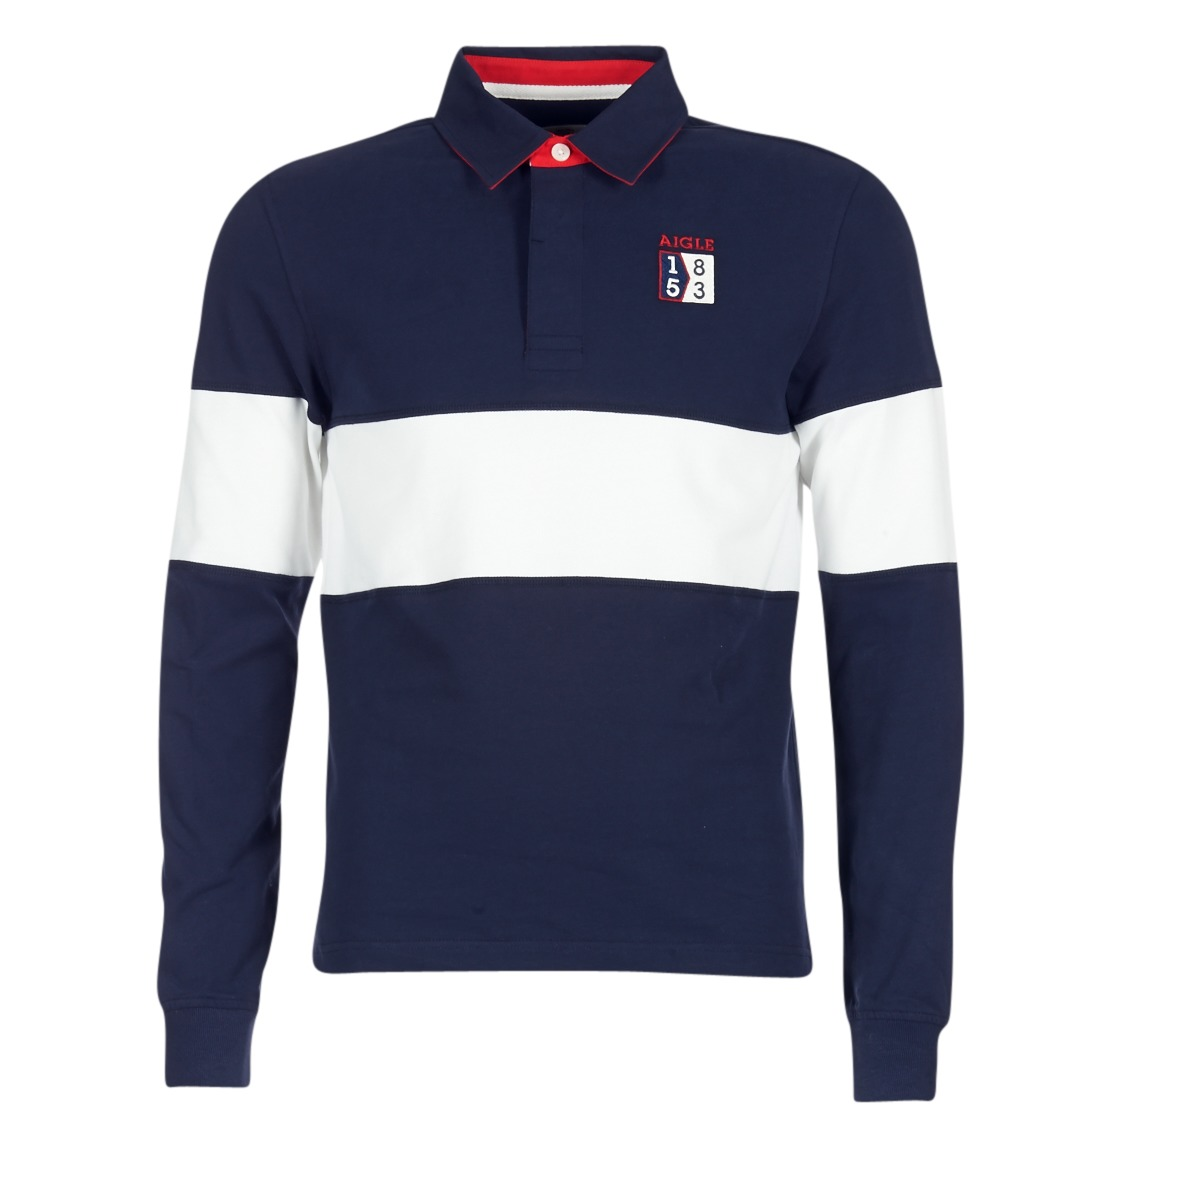 Polo maniche lunghe uomini Aigle 53 RUGBY Blu  Free Shipping  OutletScarpeOnline.it